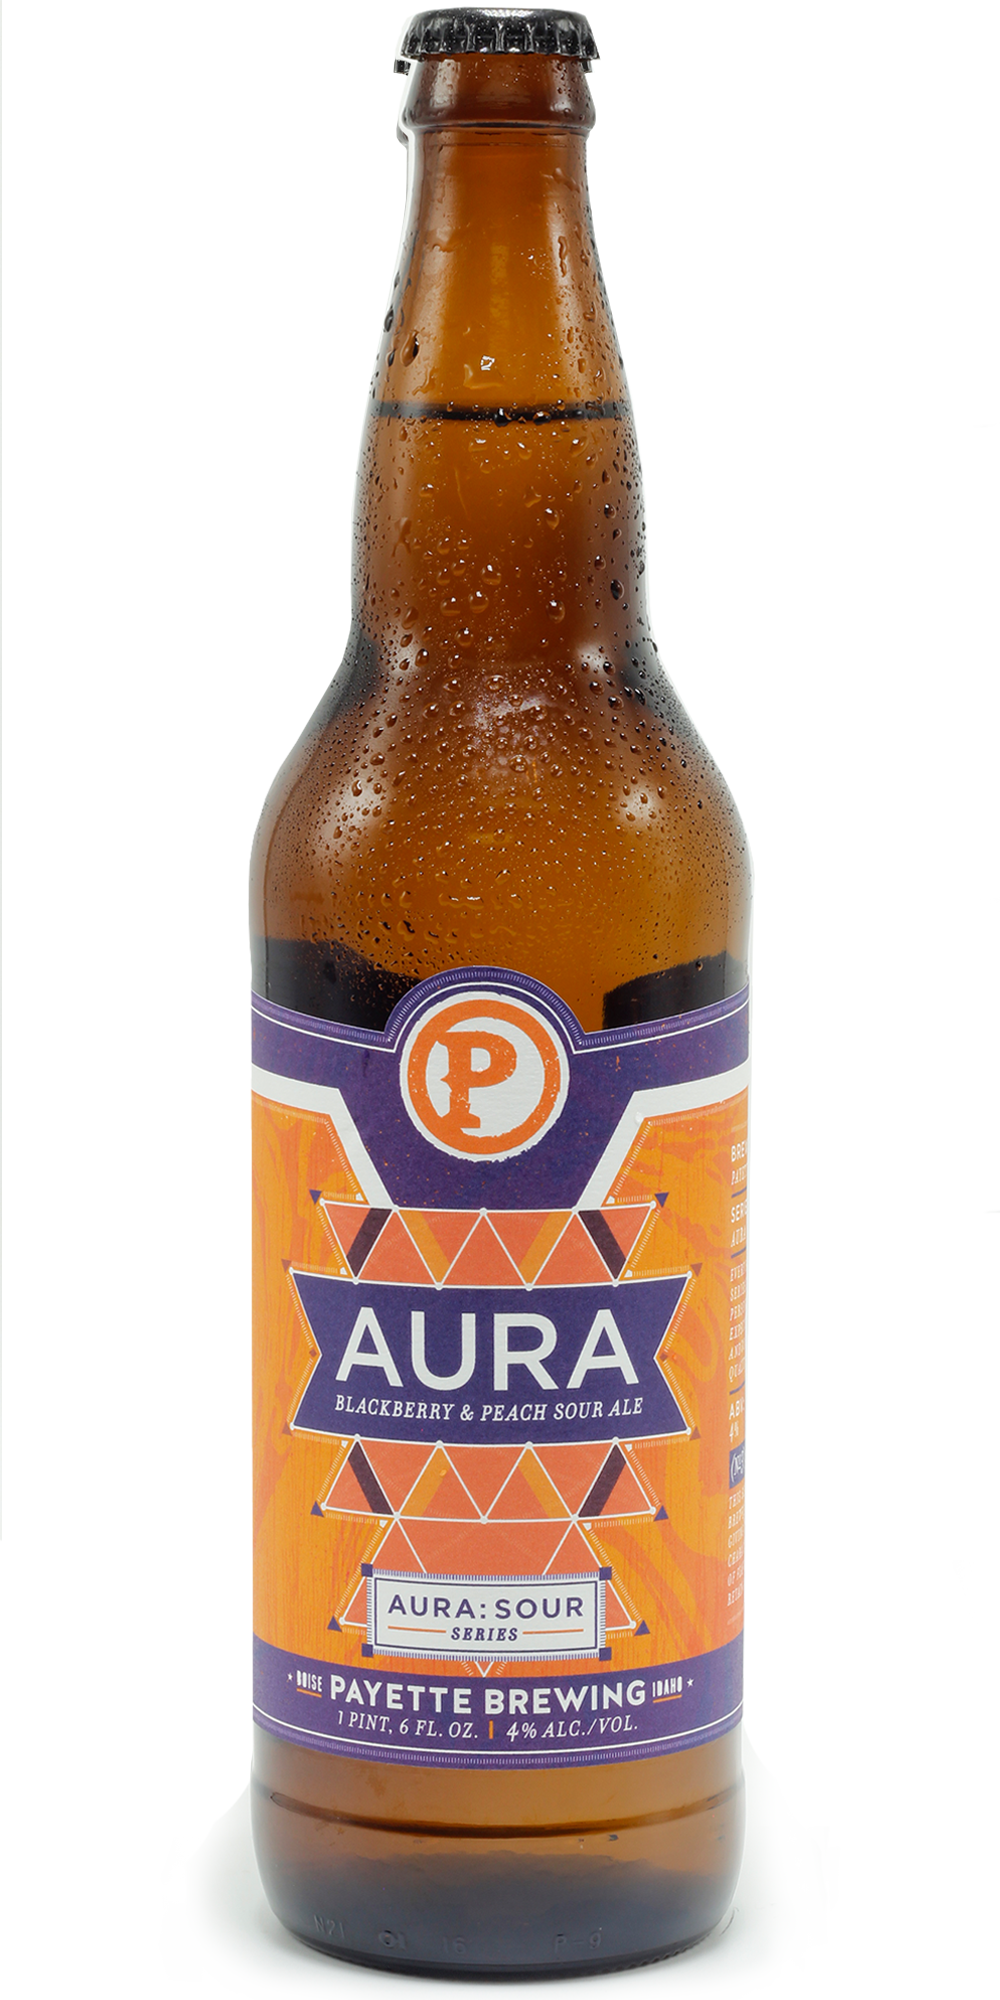 PayetteBrewing_AuraBlackberry&Peach_SourAle.png